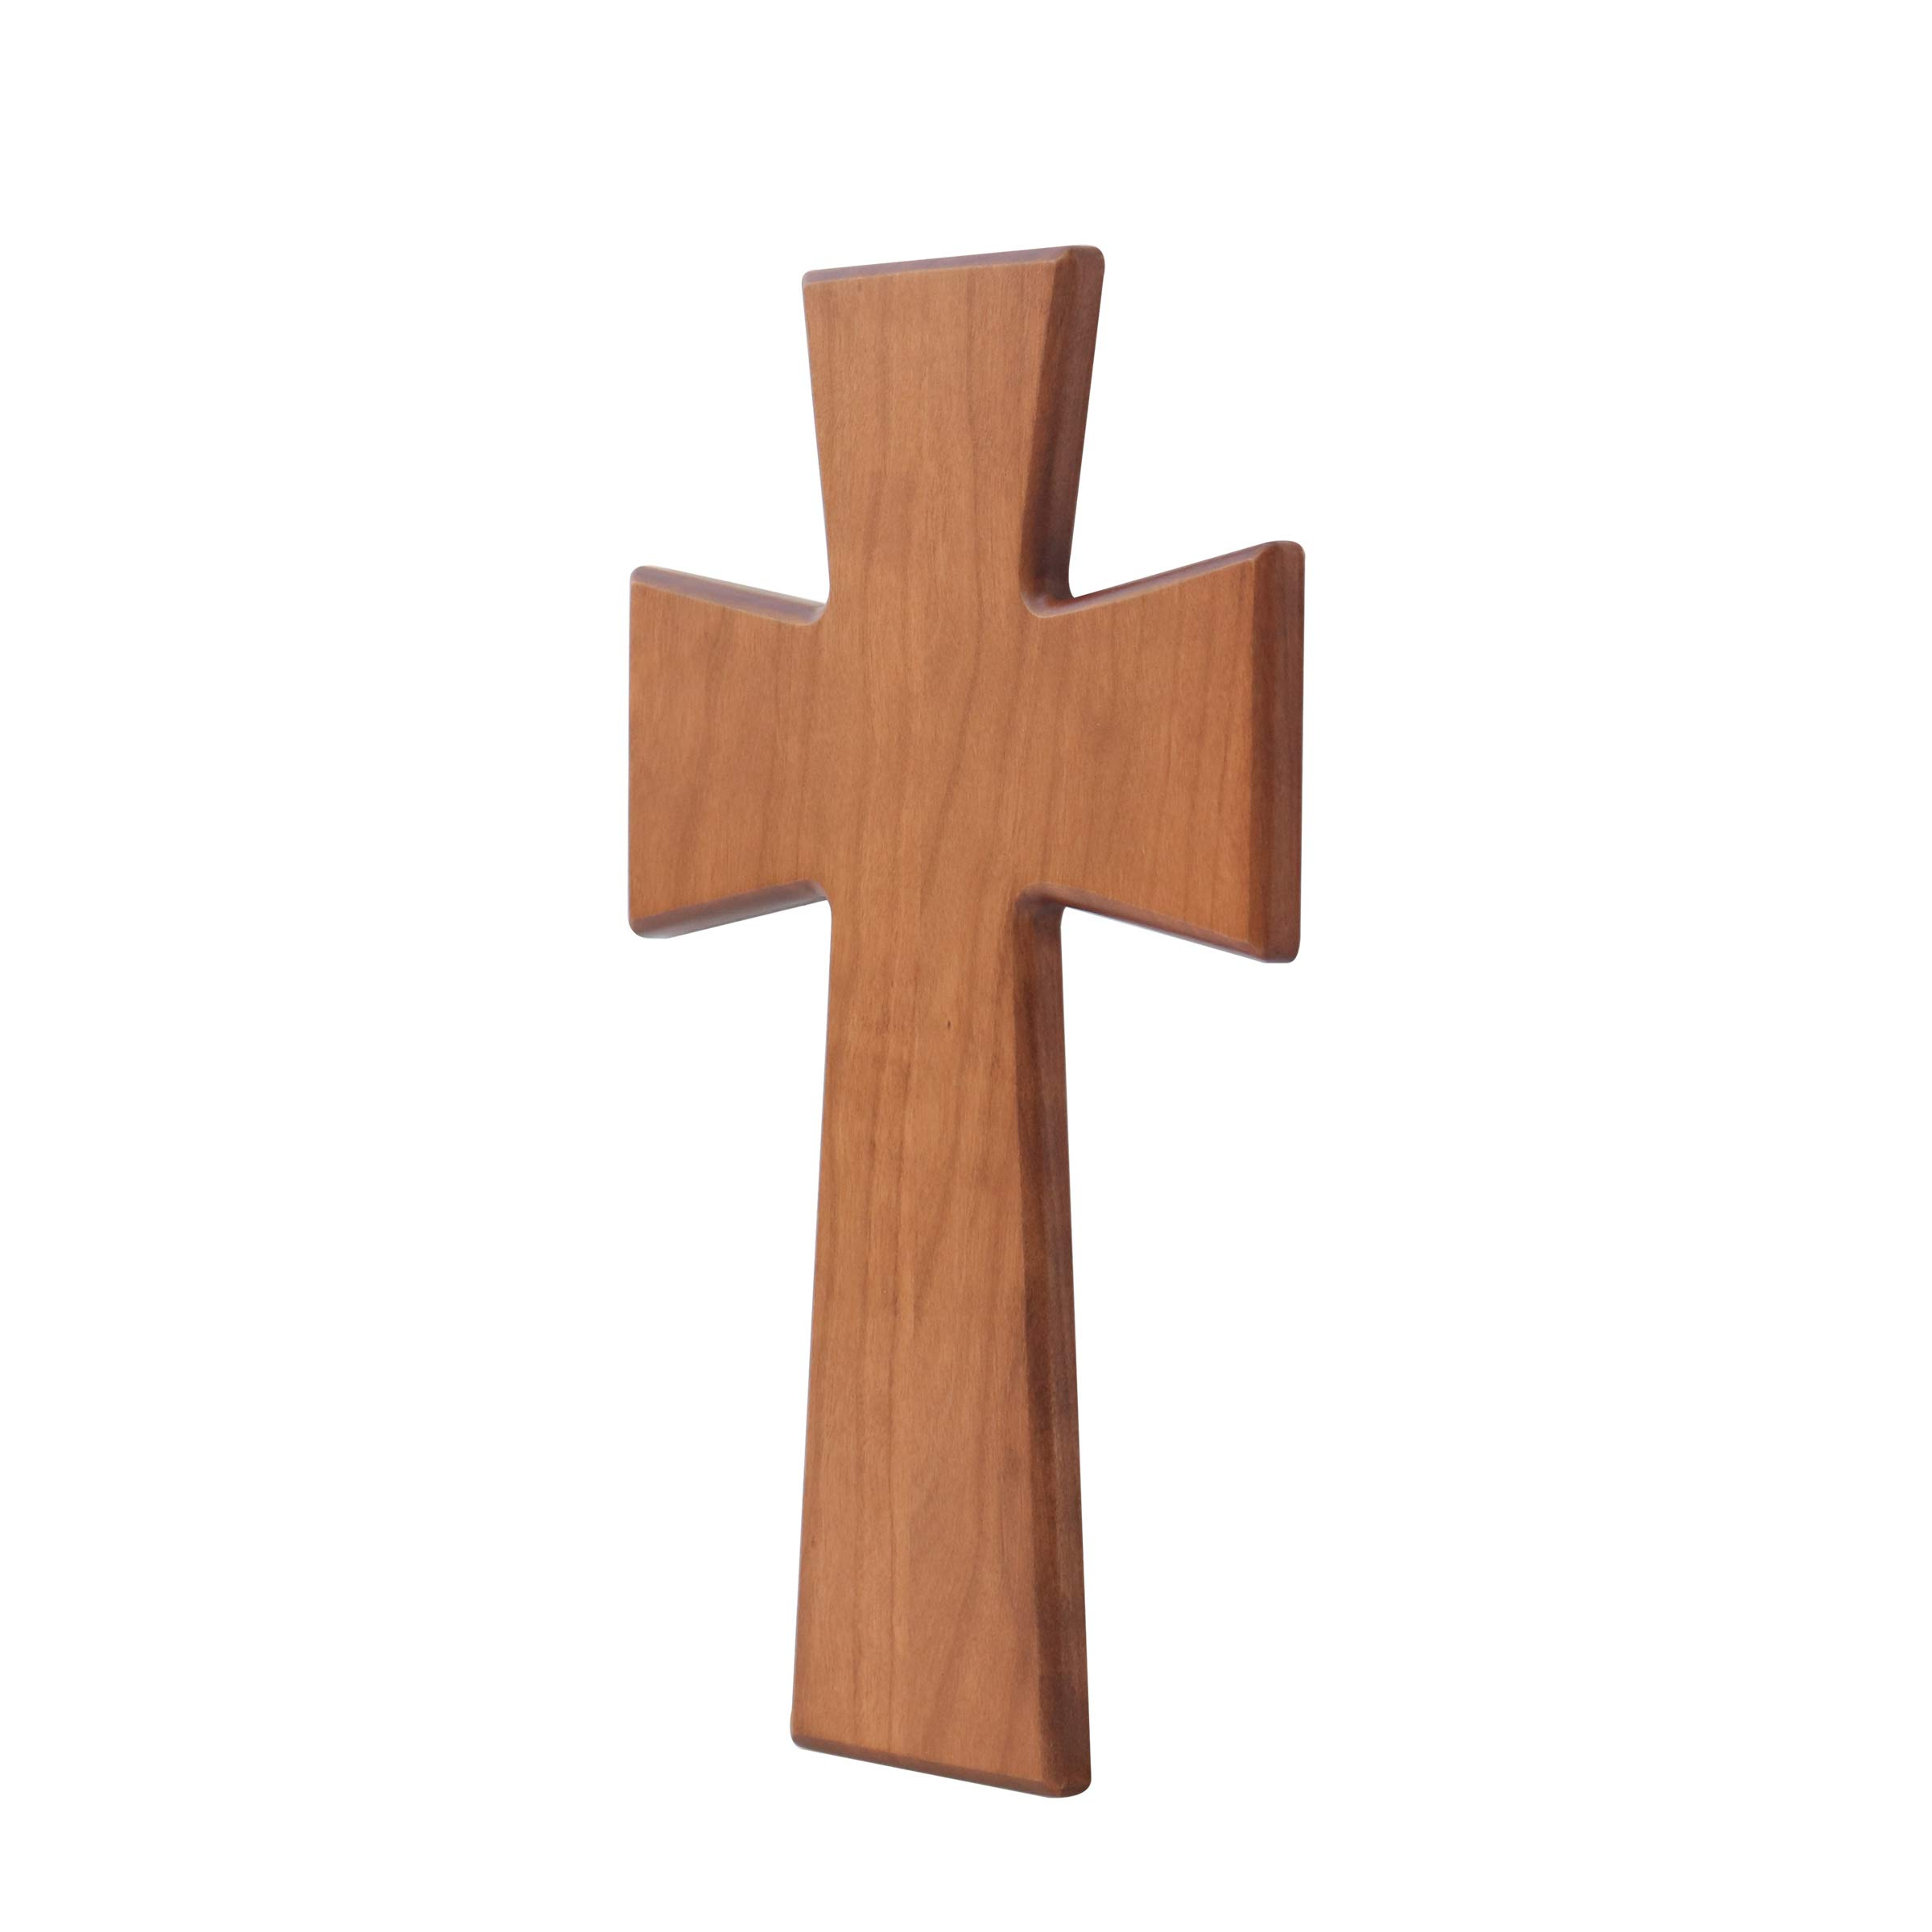 LifeSong Milestones Personalized Spanish Wedding 1st Idea for Him Her Bride Groom Husband Wife Couple Decorative Wooden Wall Cherry Cross Keepsake (Cherry) by LifeSong Milestones (Image #2)